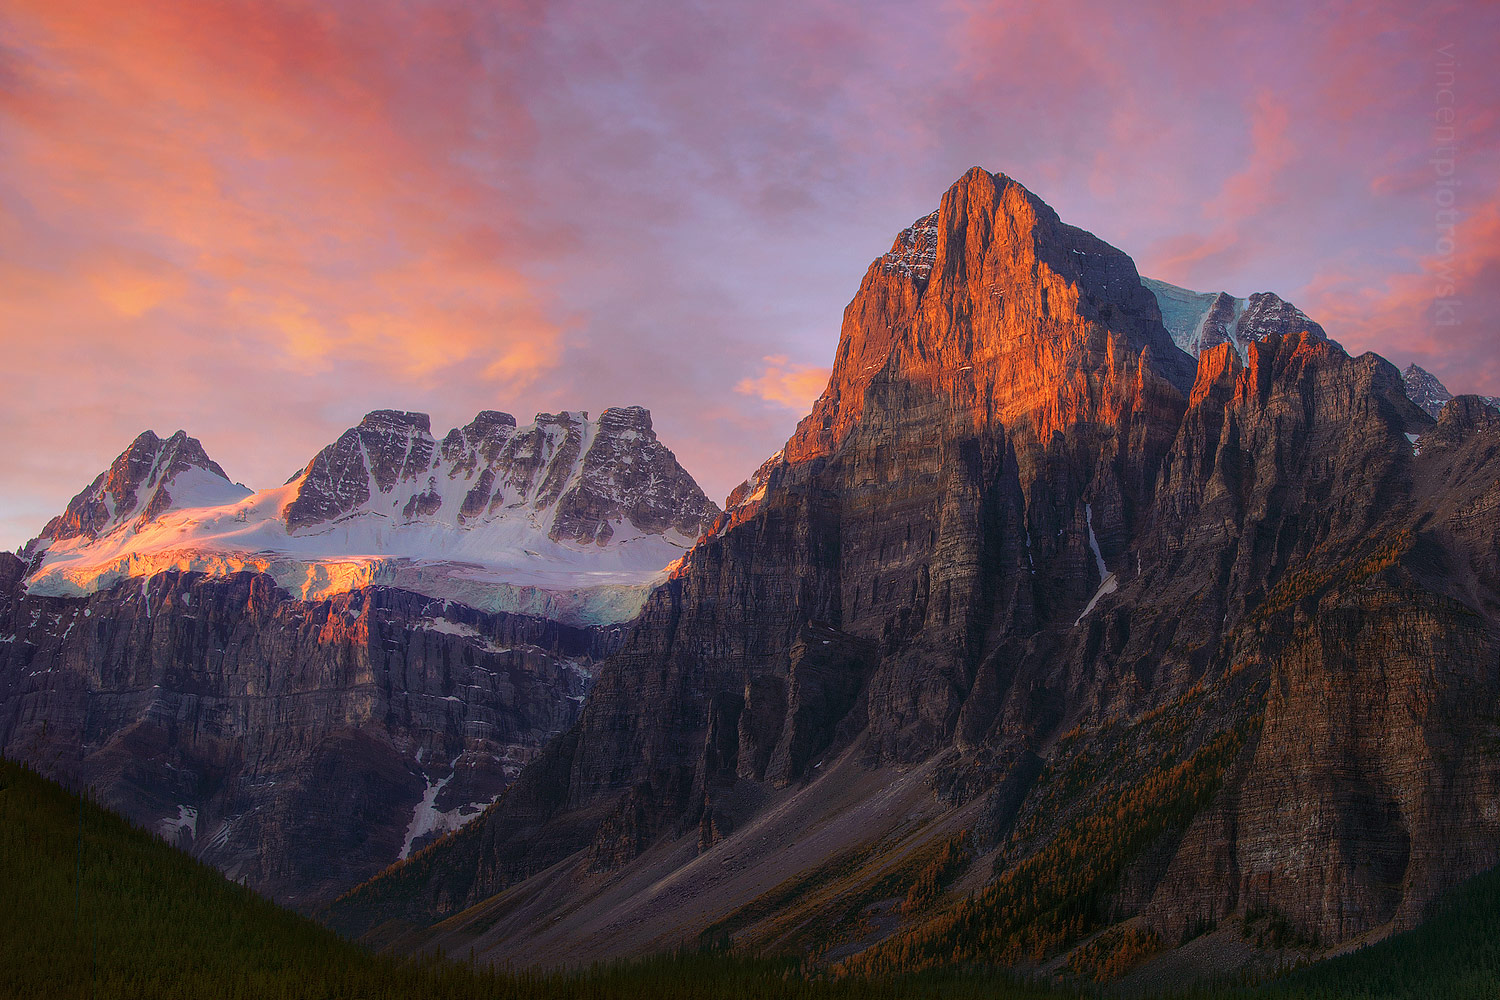 A picture of the Tower of Babel mountain from Banff National Park taken at sunrise.